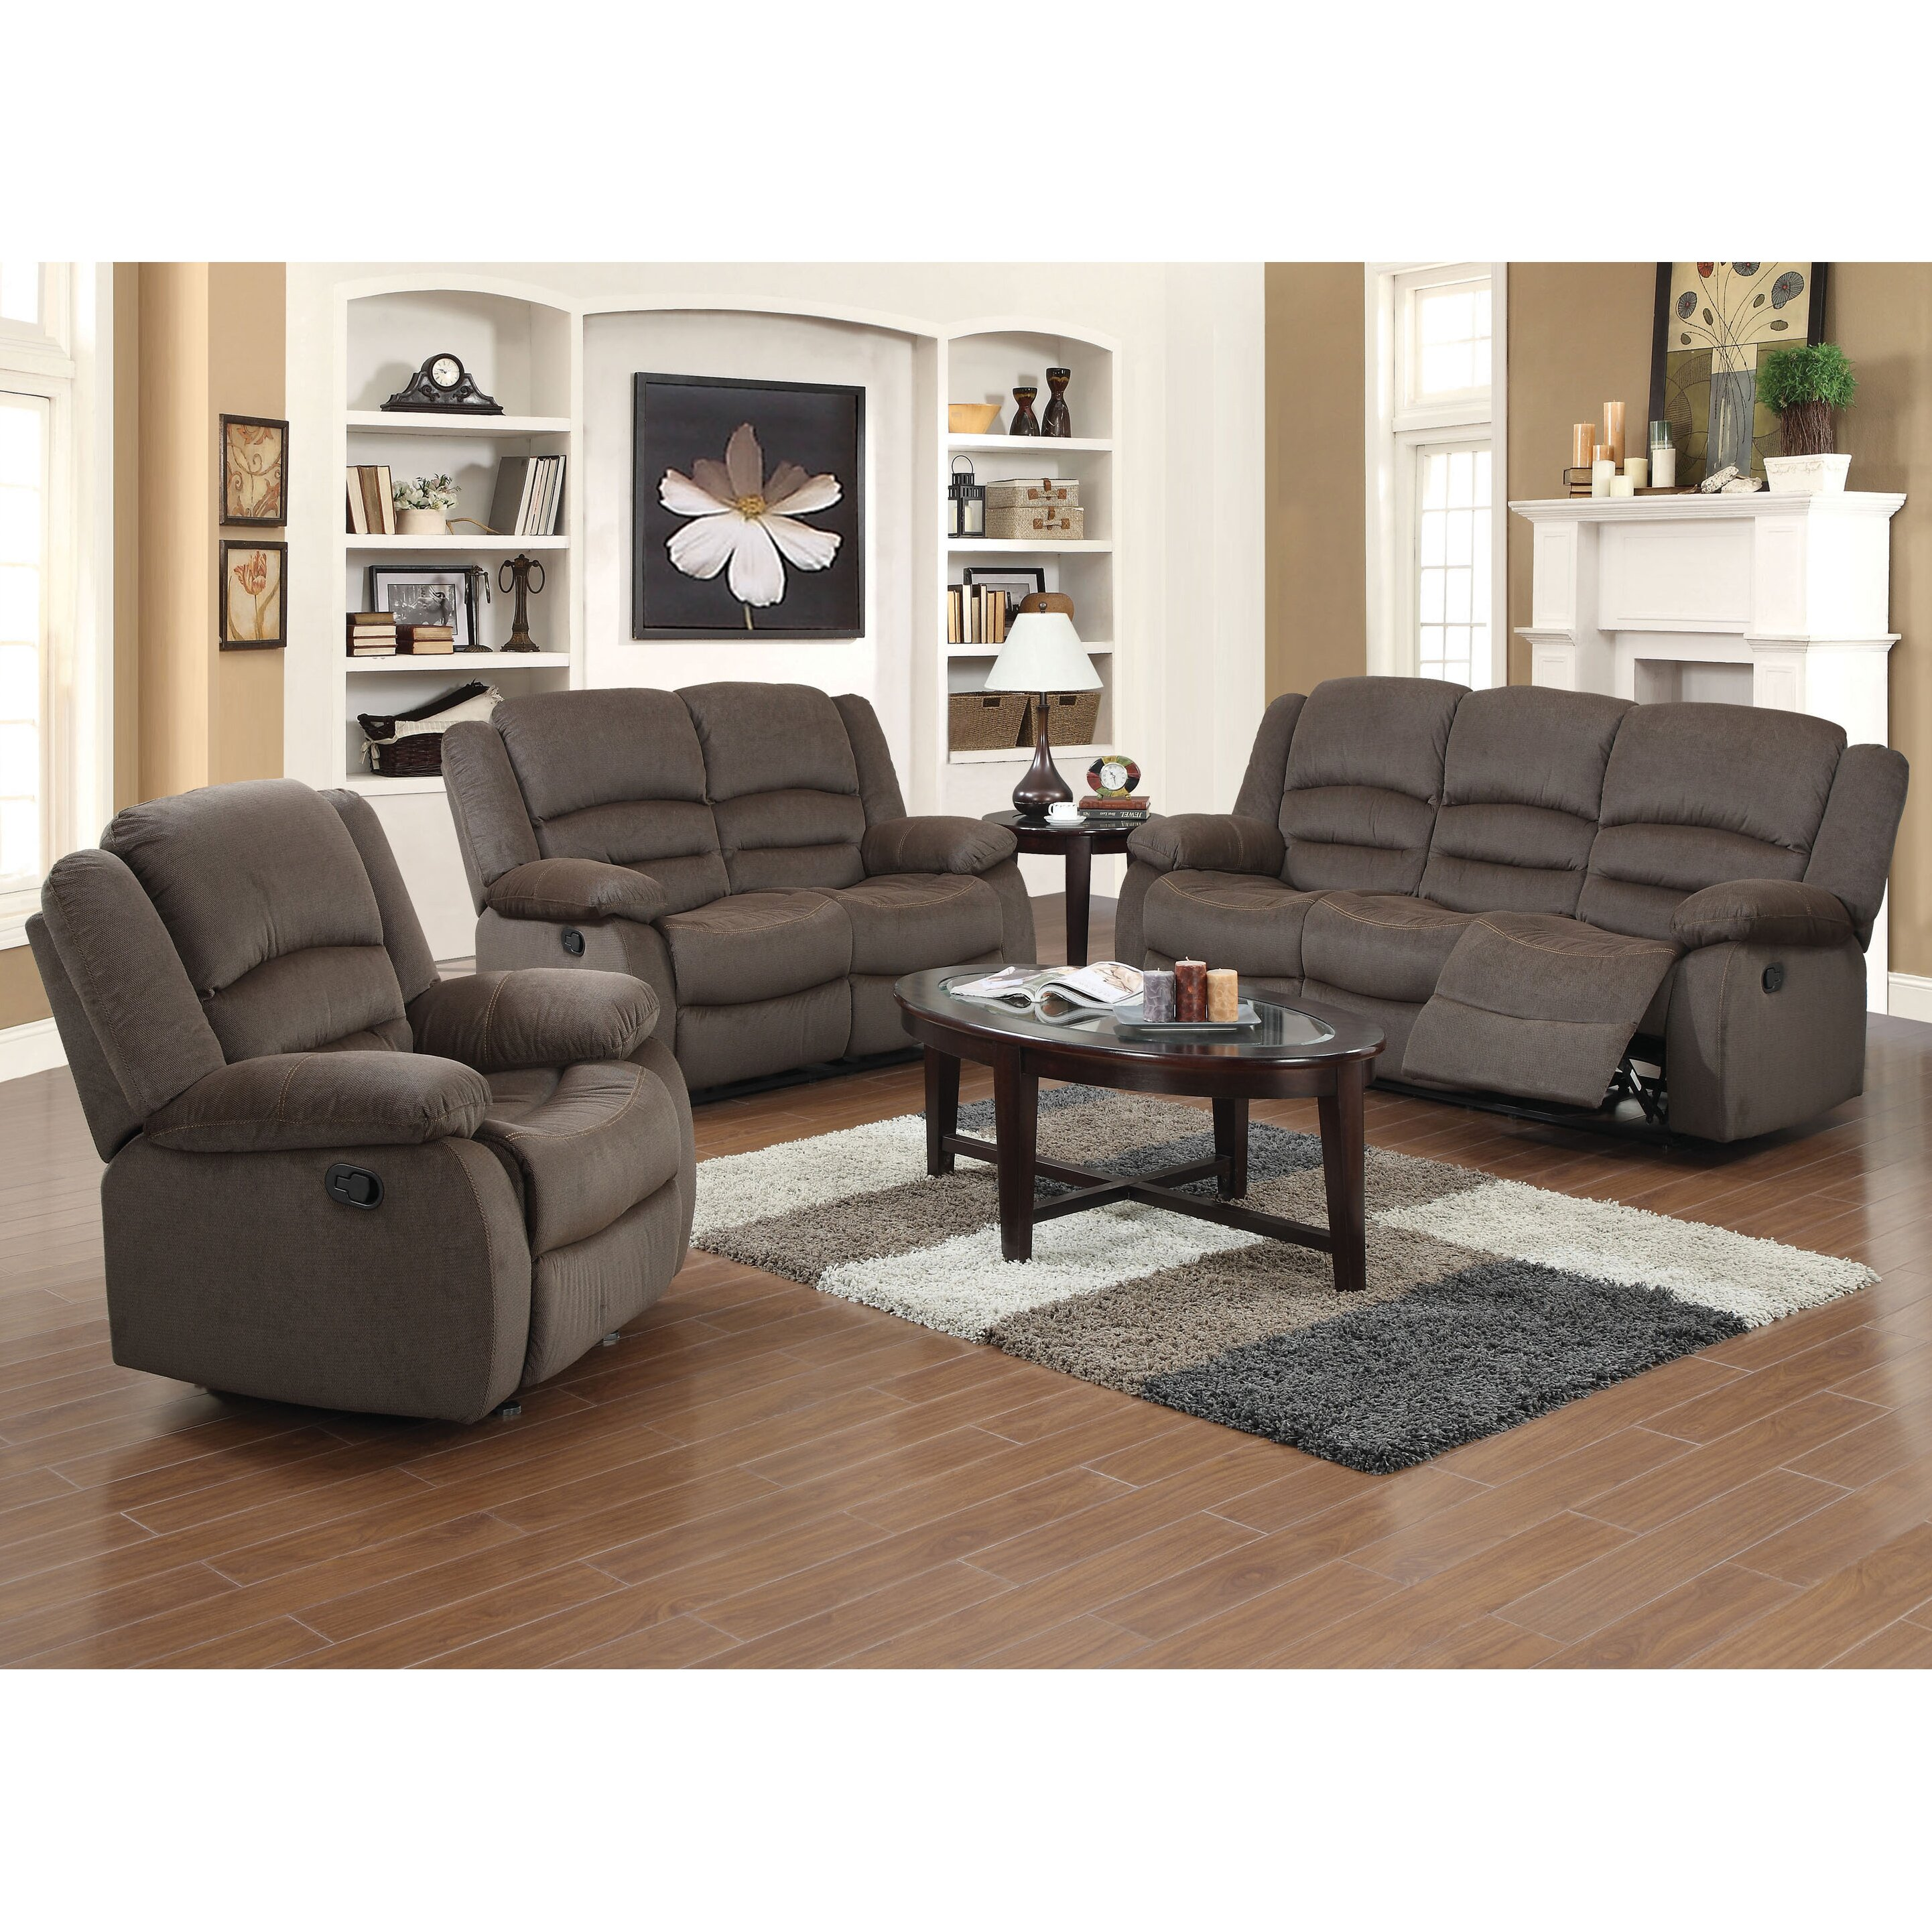 Container 3 Piece Recliner Sofa Set & Reviews